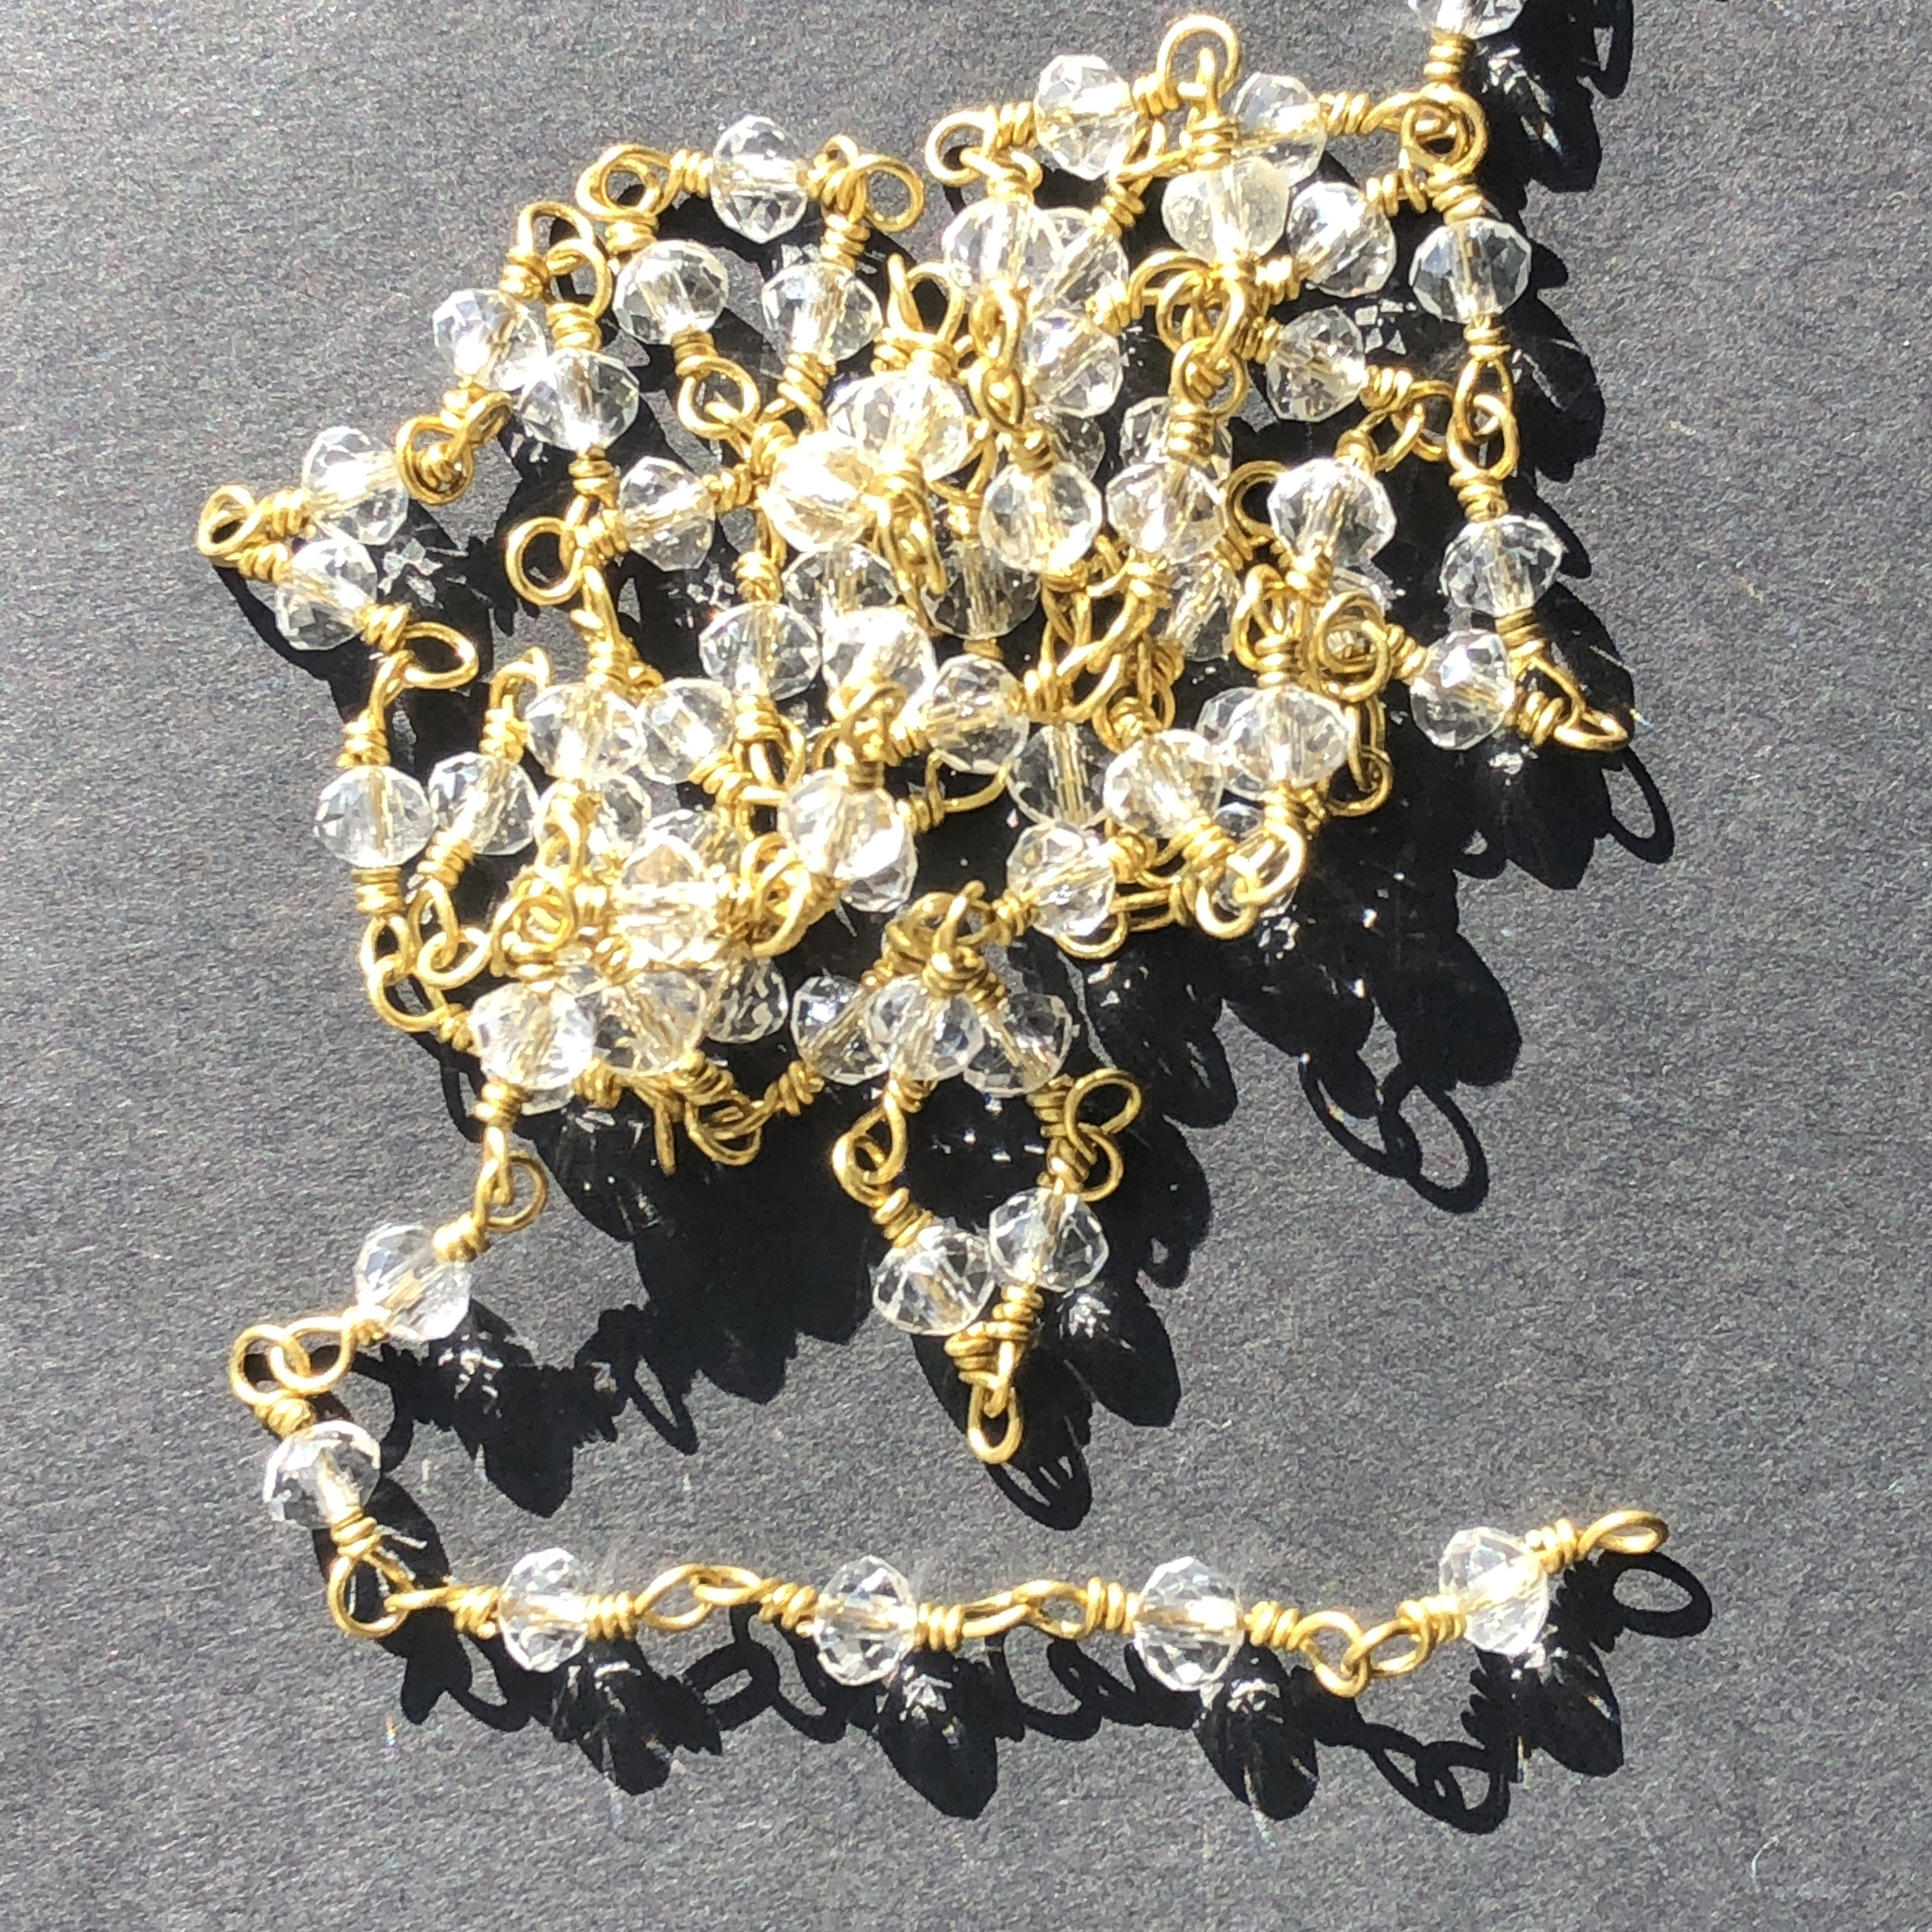 glass bead chain, bead chain, hand wire wrapped chain, antique gold chain, crystal, glass beads, jewelry chain, jewelry making supplies, vintage jewelry supplies, bead chain, handmade chain, glass beads, chain, beaded chain, 07837